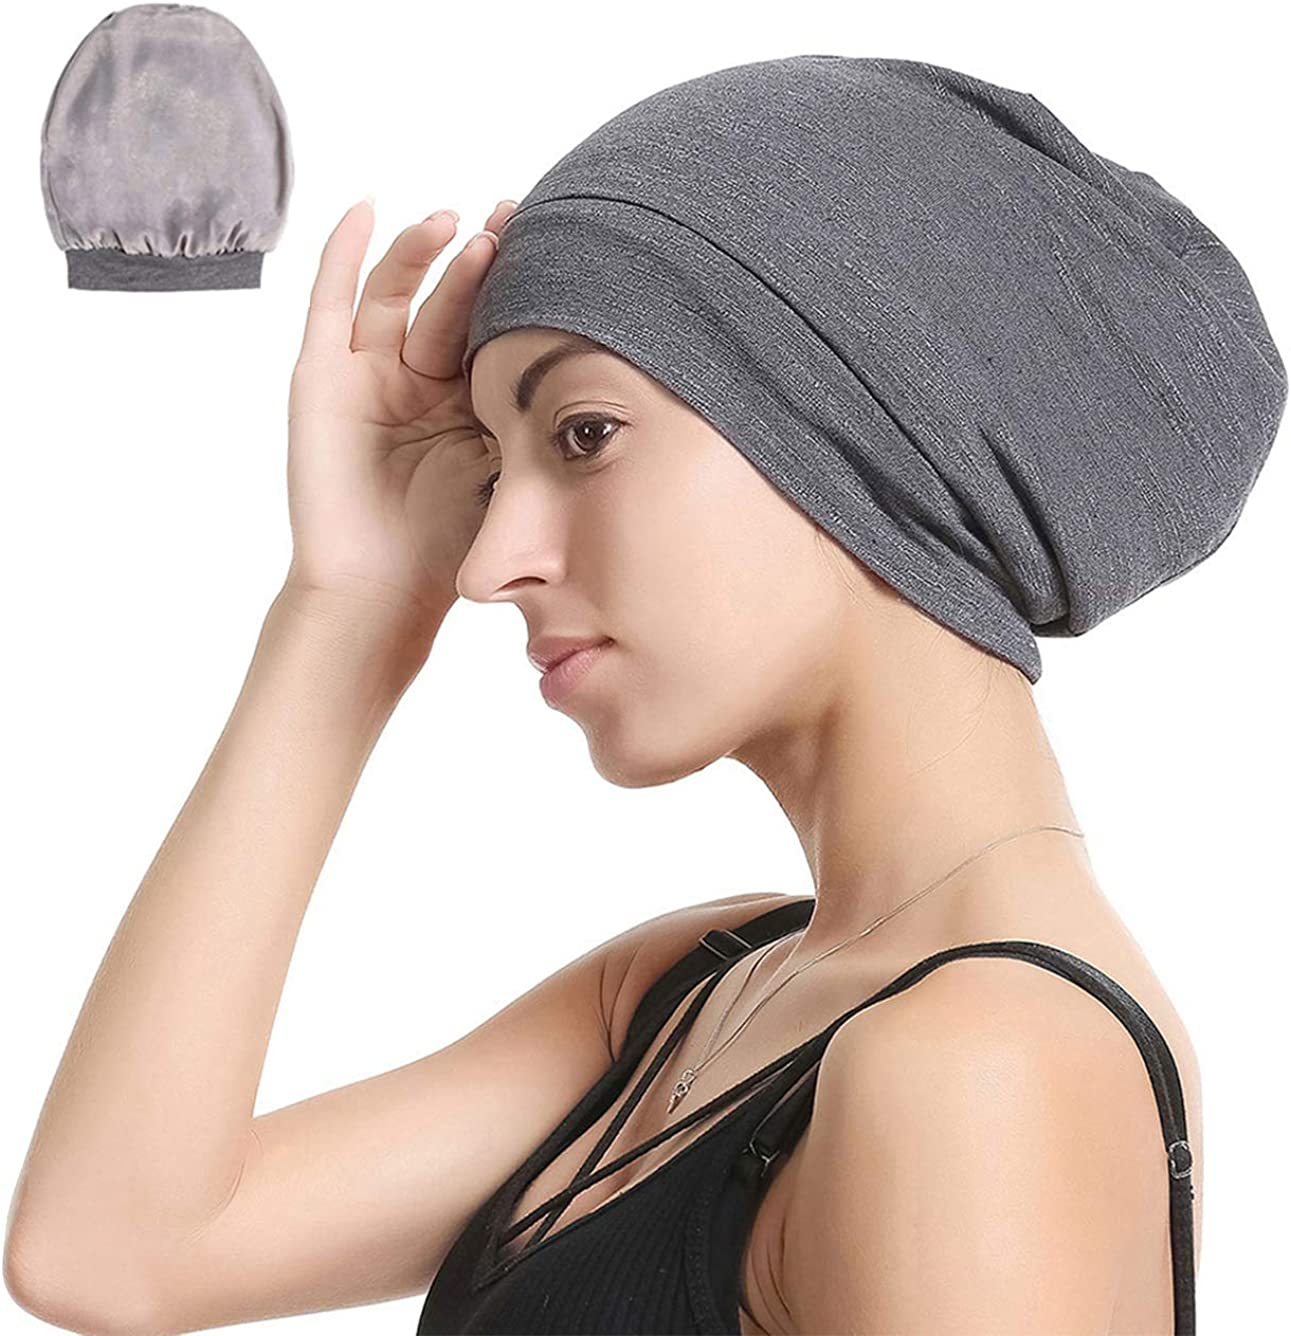 Slap Night Cap Sleep Hat Beanie - Dark Grey Women Organic Bamboo Satin Silk Lined Bonnet Surgical Cap Summer Scarf Hair Cover for Lady Lightweight Light Thin Jersey Chemo, Gifts for Women: Clothing